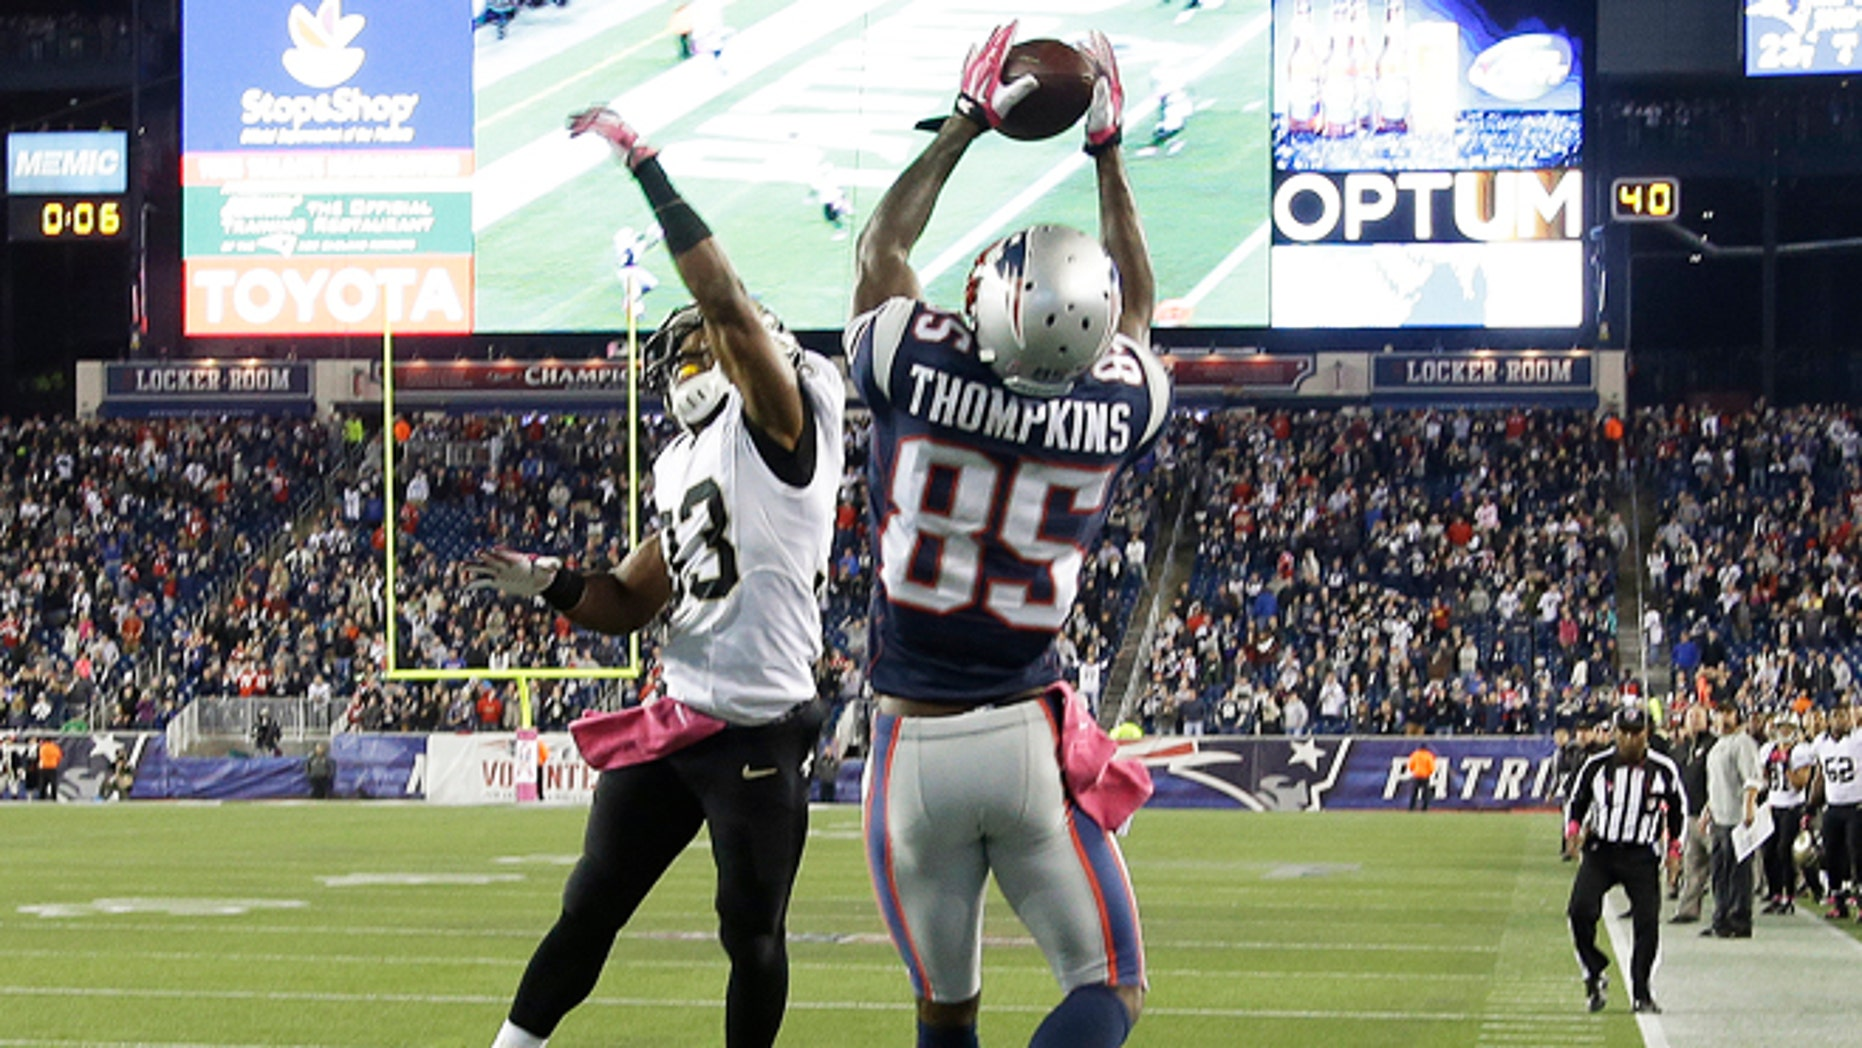 Oct.13, 2013: New England Patriots wide receiver Kenbrell Thompkins (85) catches the winning touchdown pass against New Orleans Saints cornerback Jabari Greer (33) in the fourth quarter in Foxborough, Mass. The Patriots won 30-27.